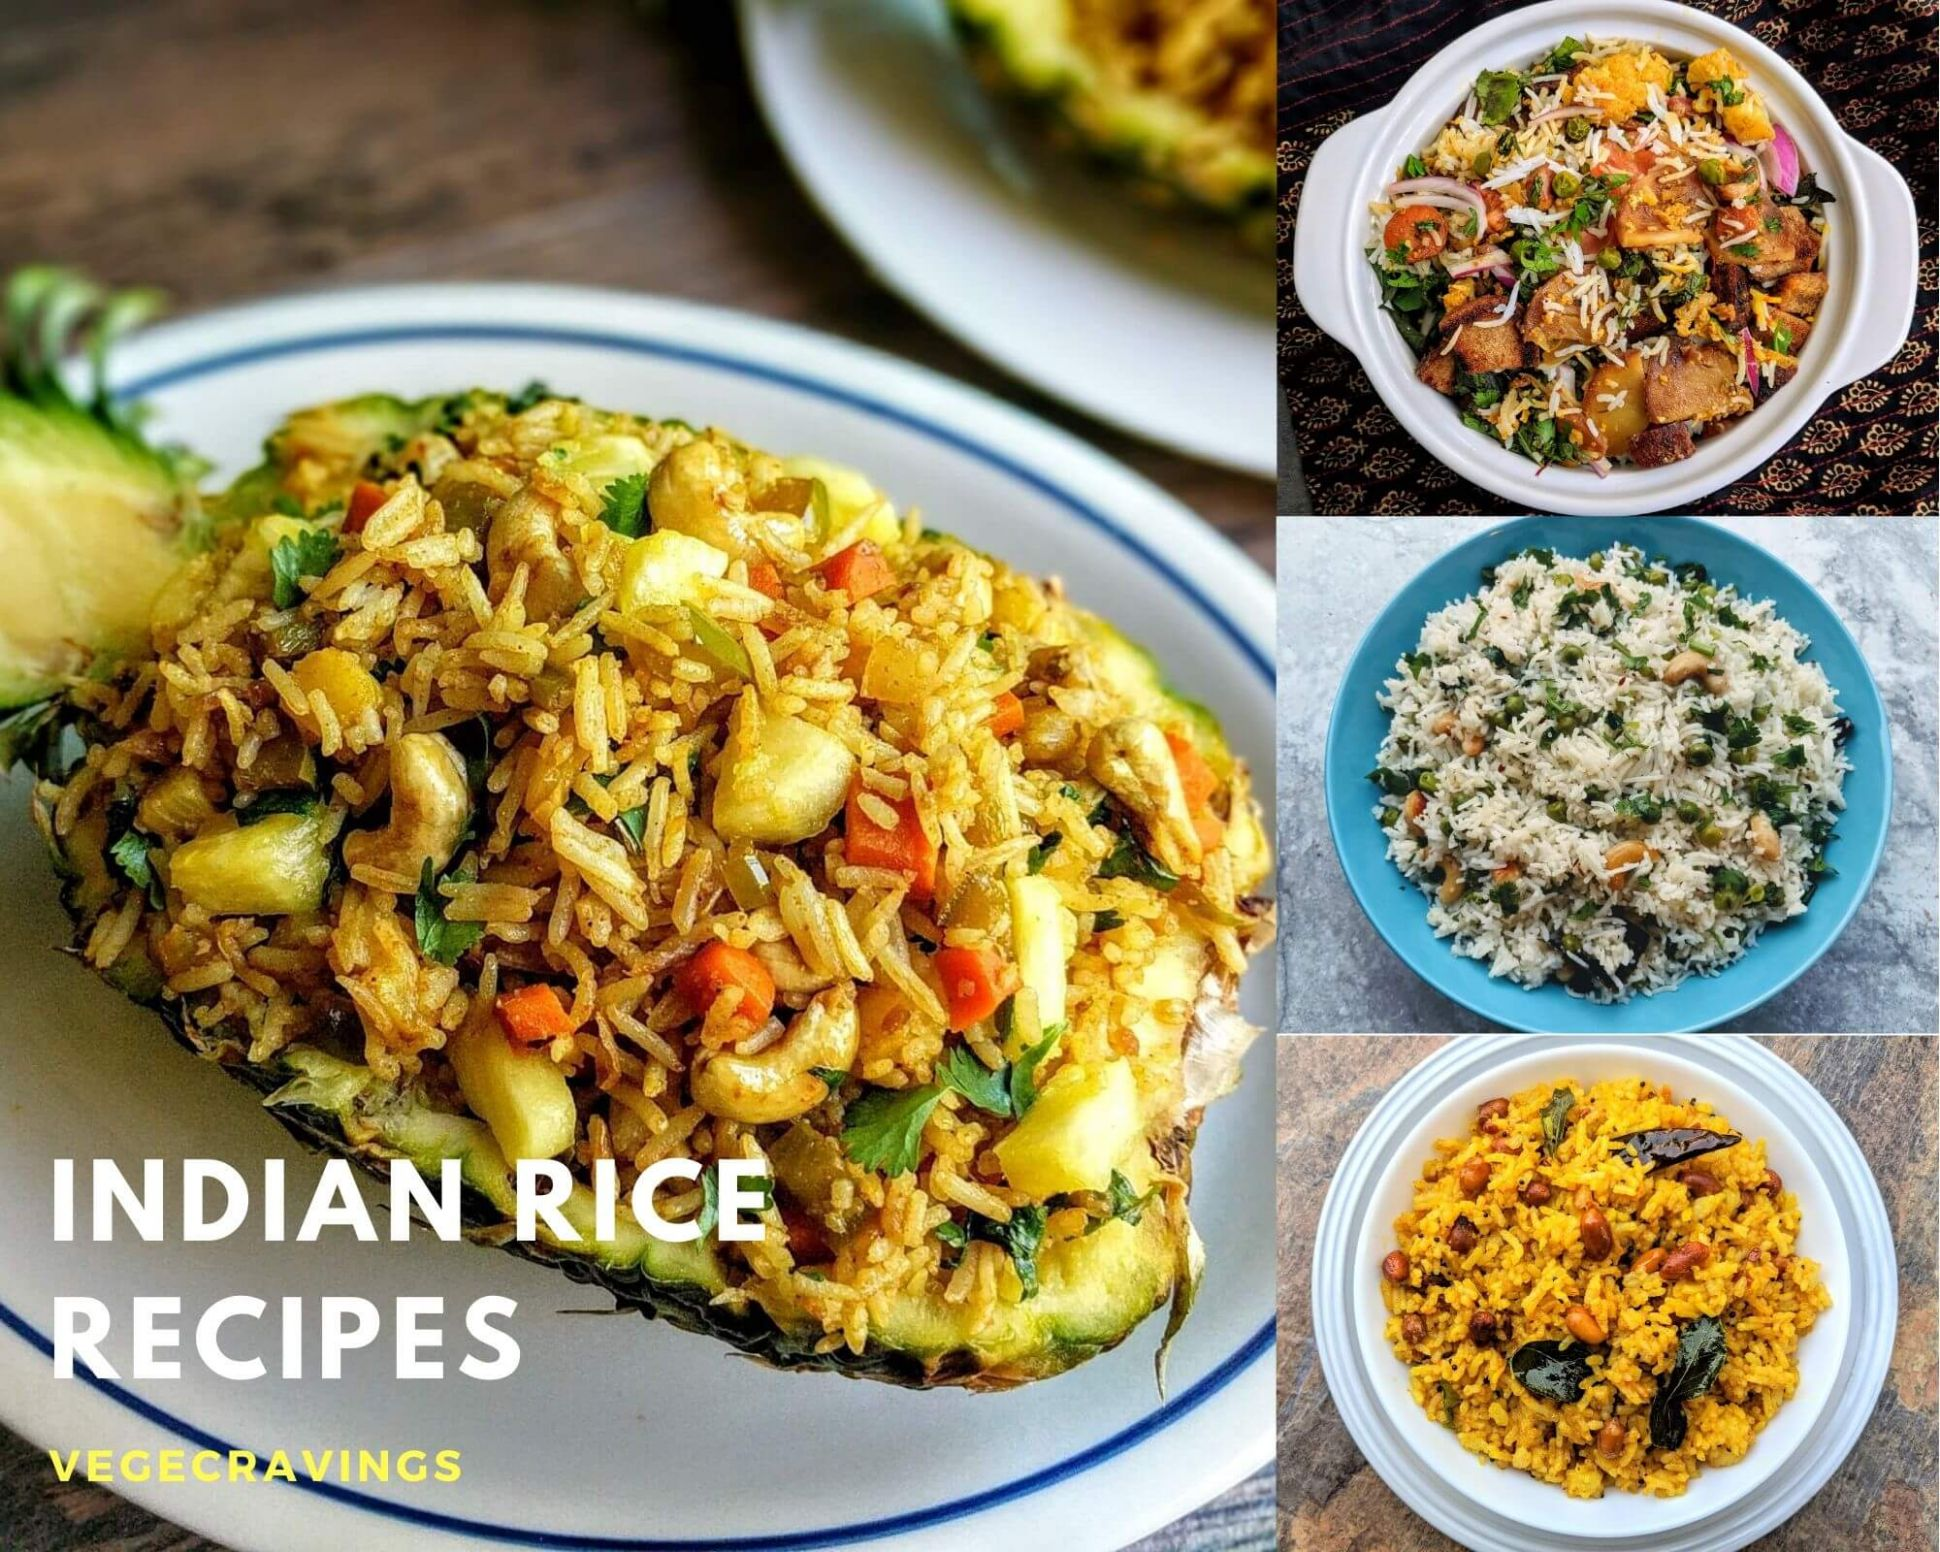 Rice Recipes | List of 8 Veg Rice Recipes | VegeCravings